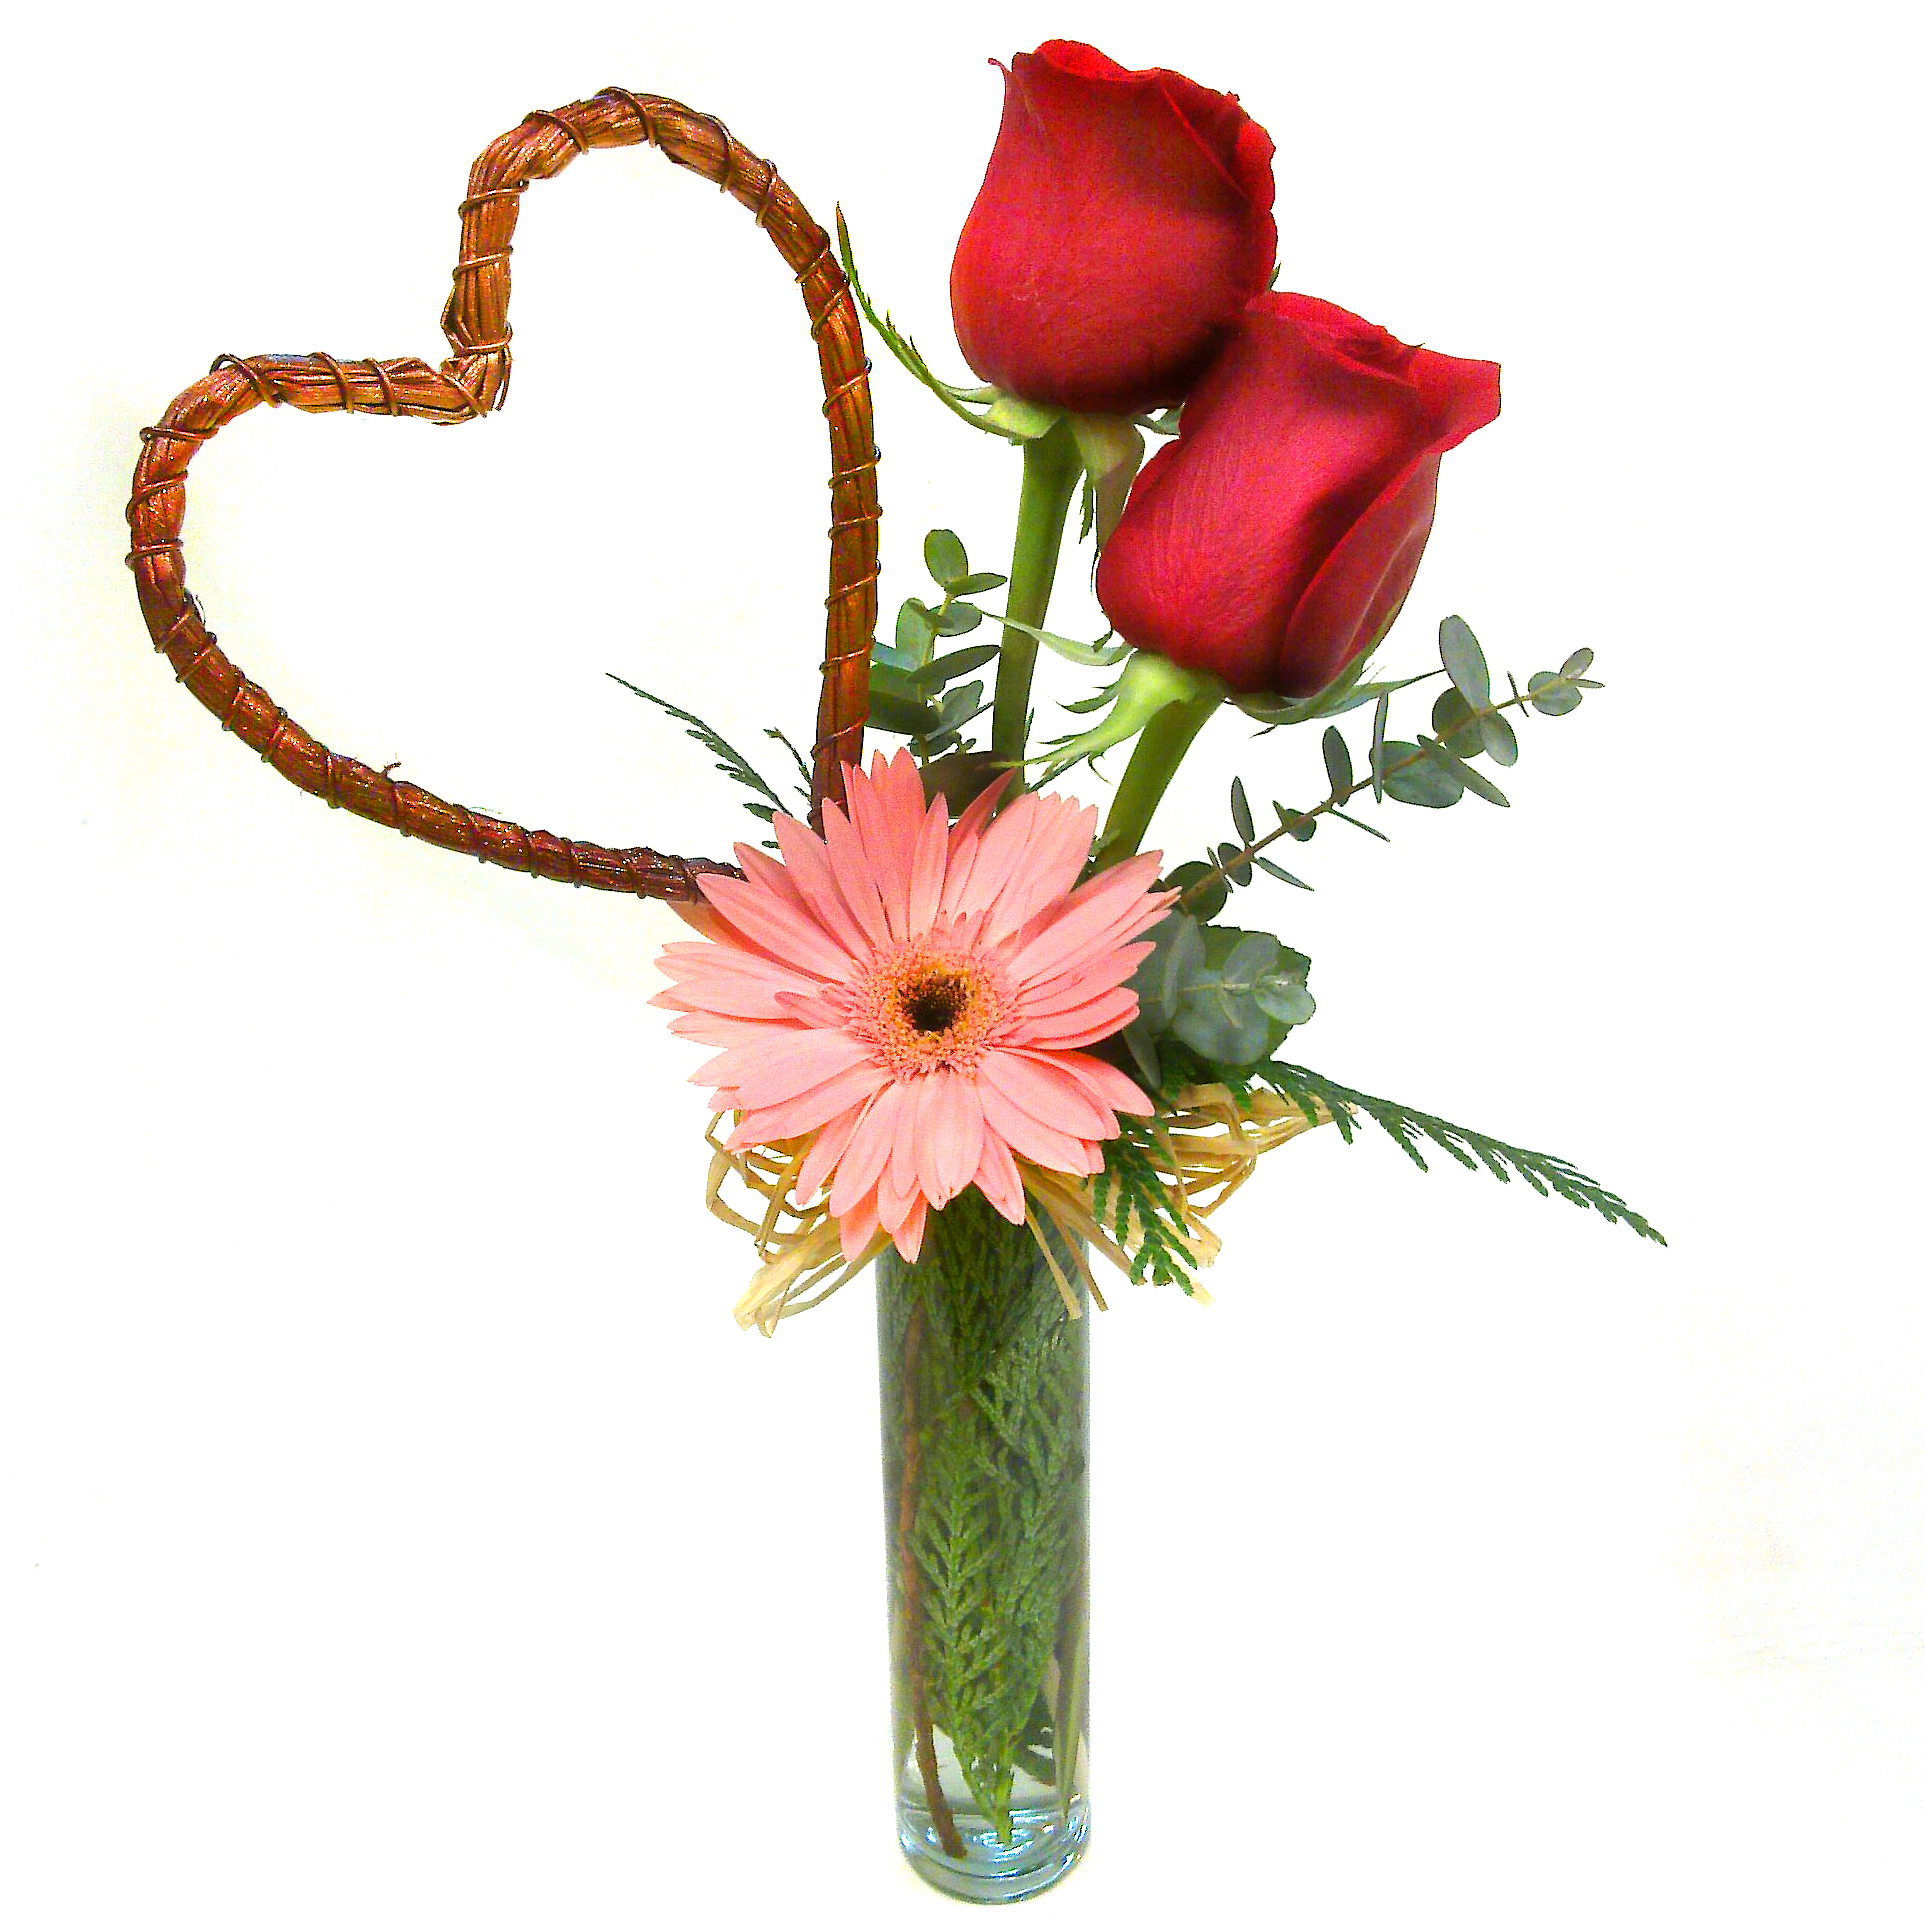 Search and send flowers by Ocation: